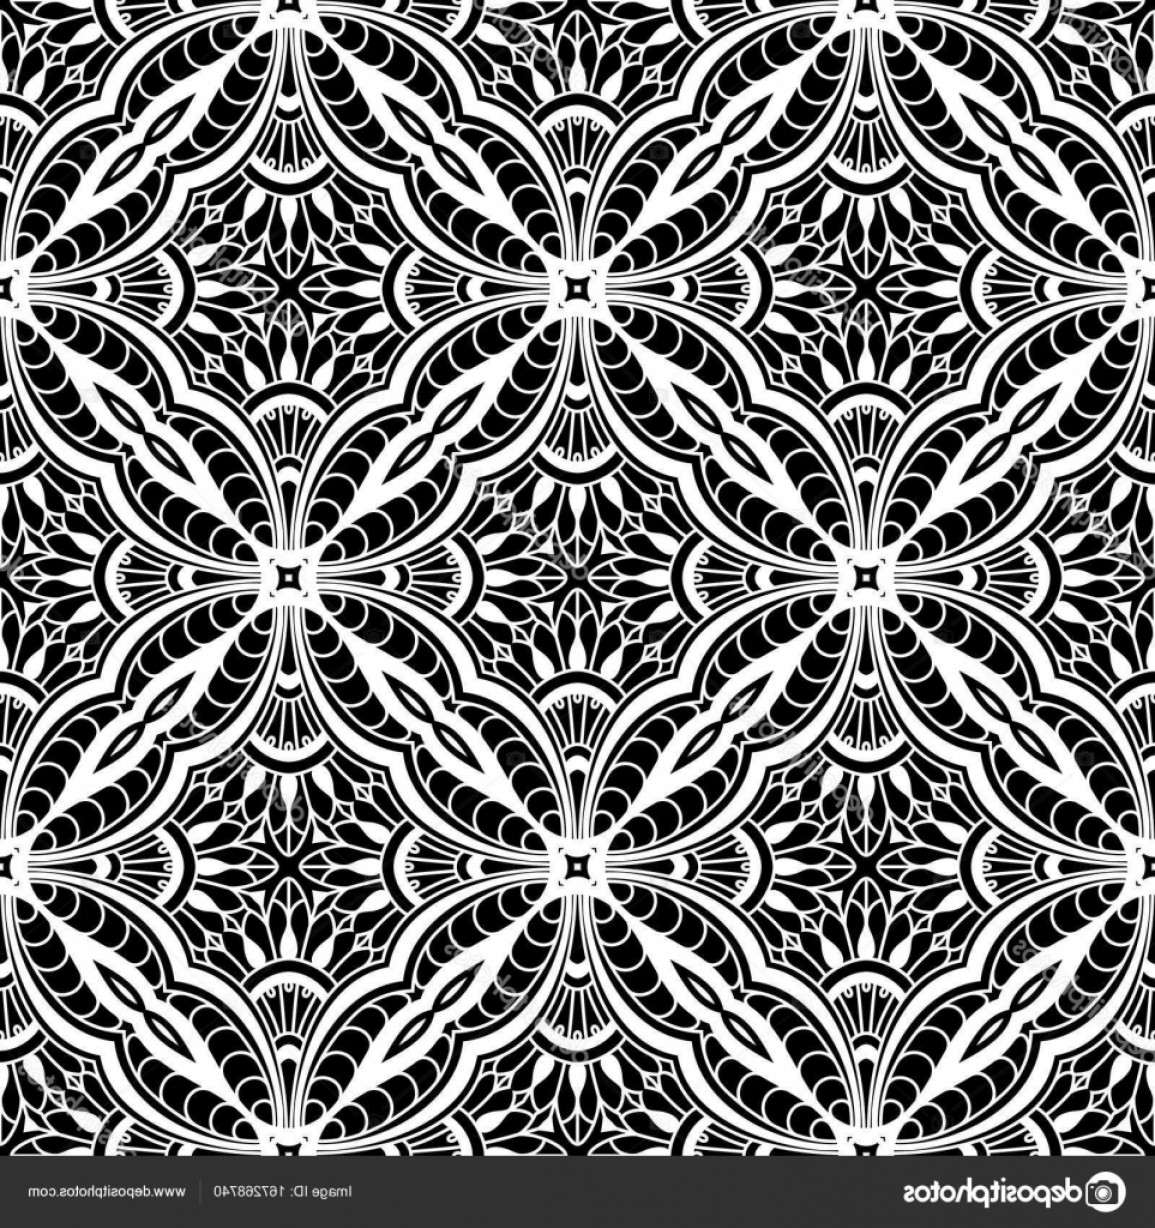 Tulle Black Lace Pattern Vector: Stock Illustration Black And White Lace Pattern